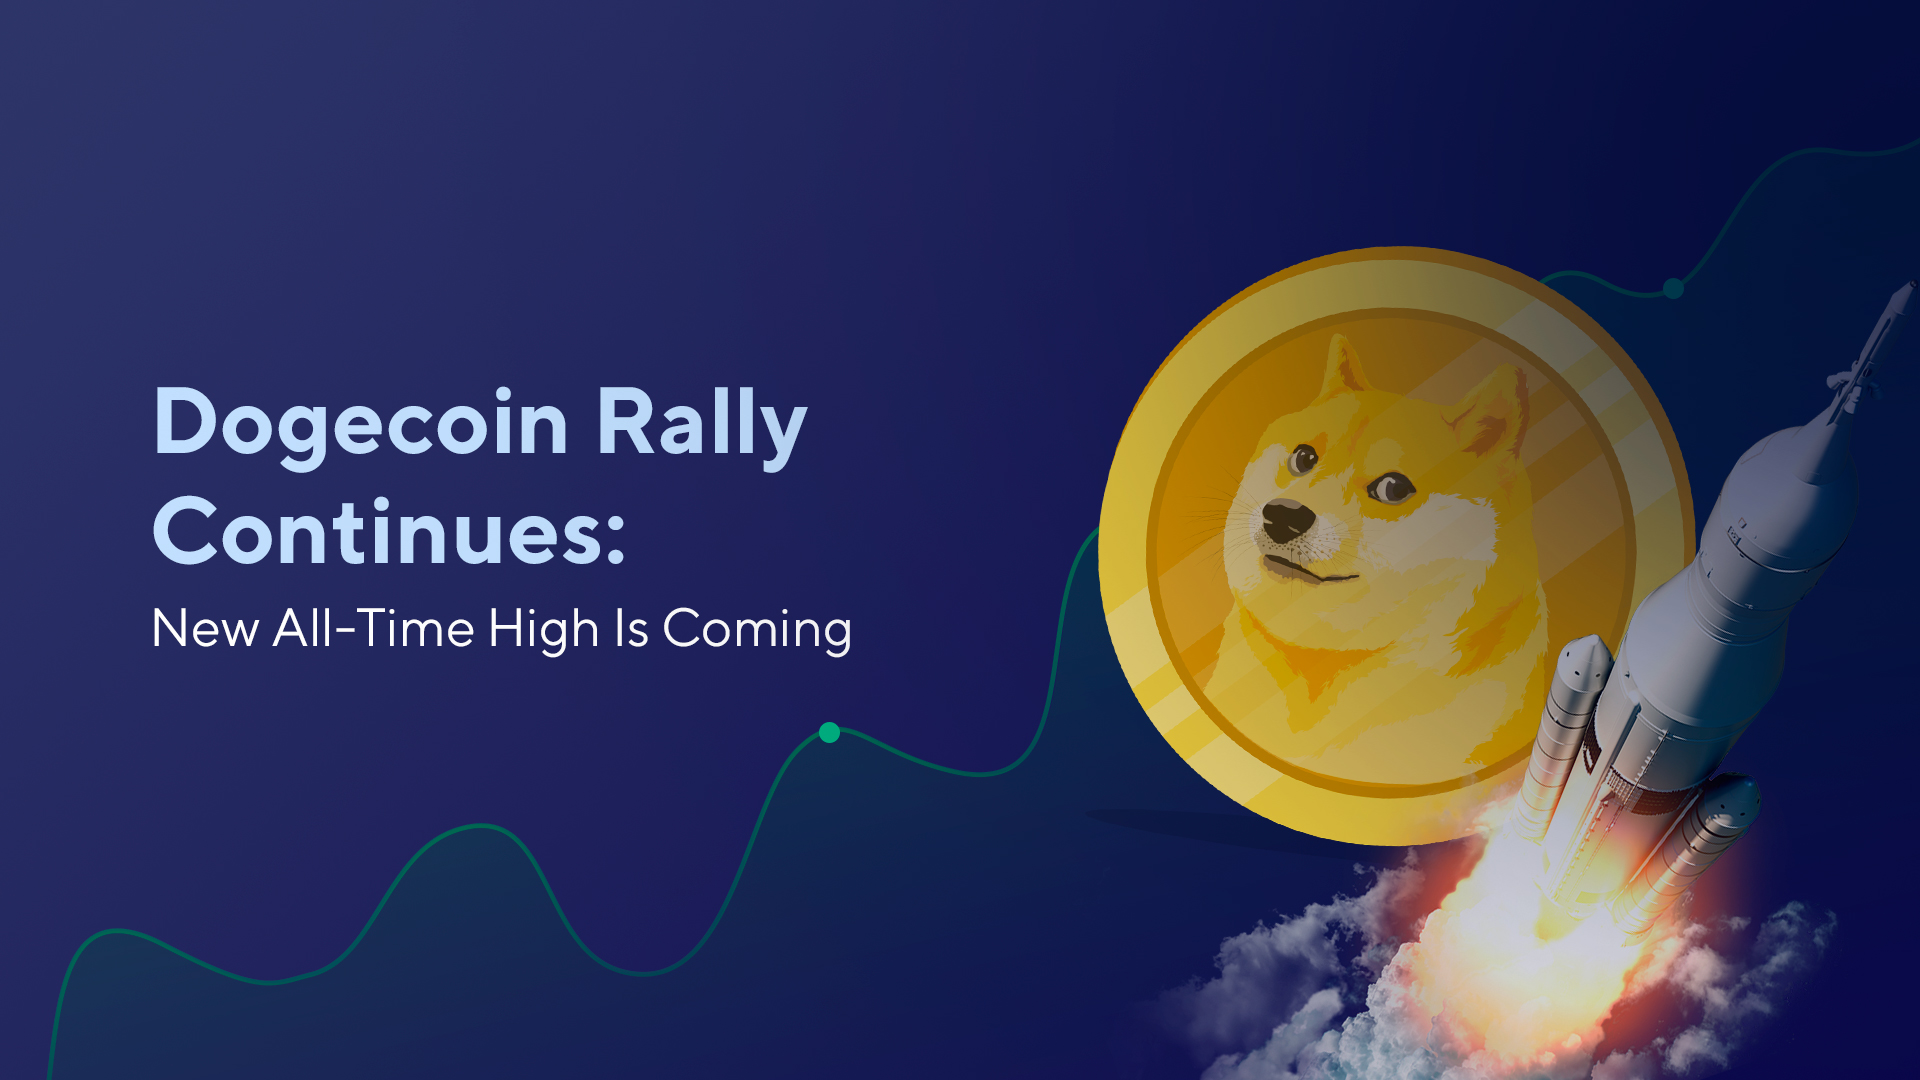 Dogecoin Rally Continues: New All-Time High Is Coming